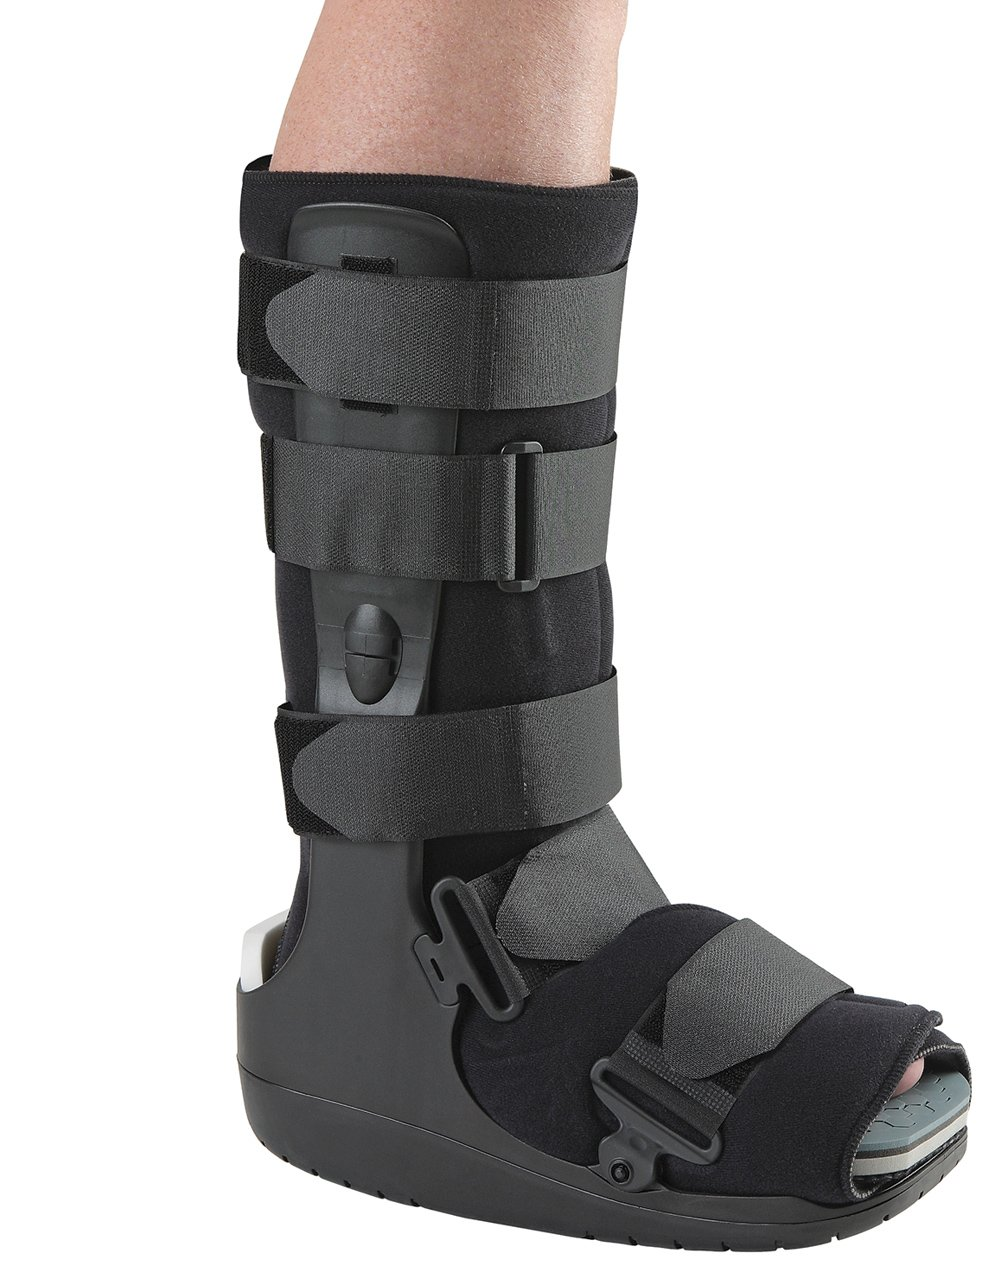 Ossur Active Off Loading Diabetic Walking Boot (Large)